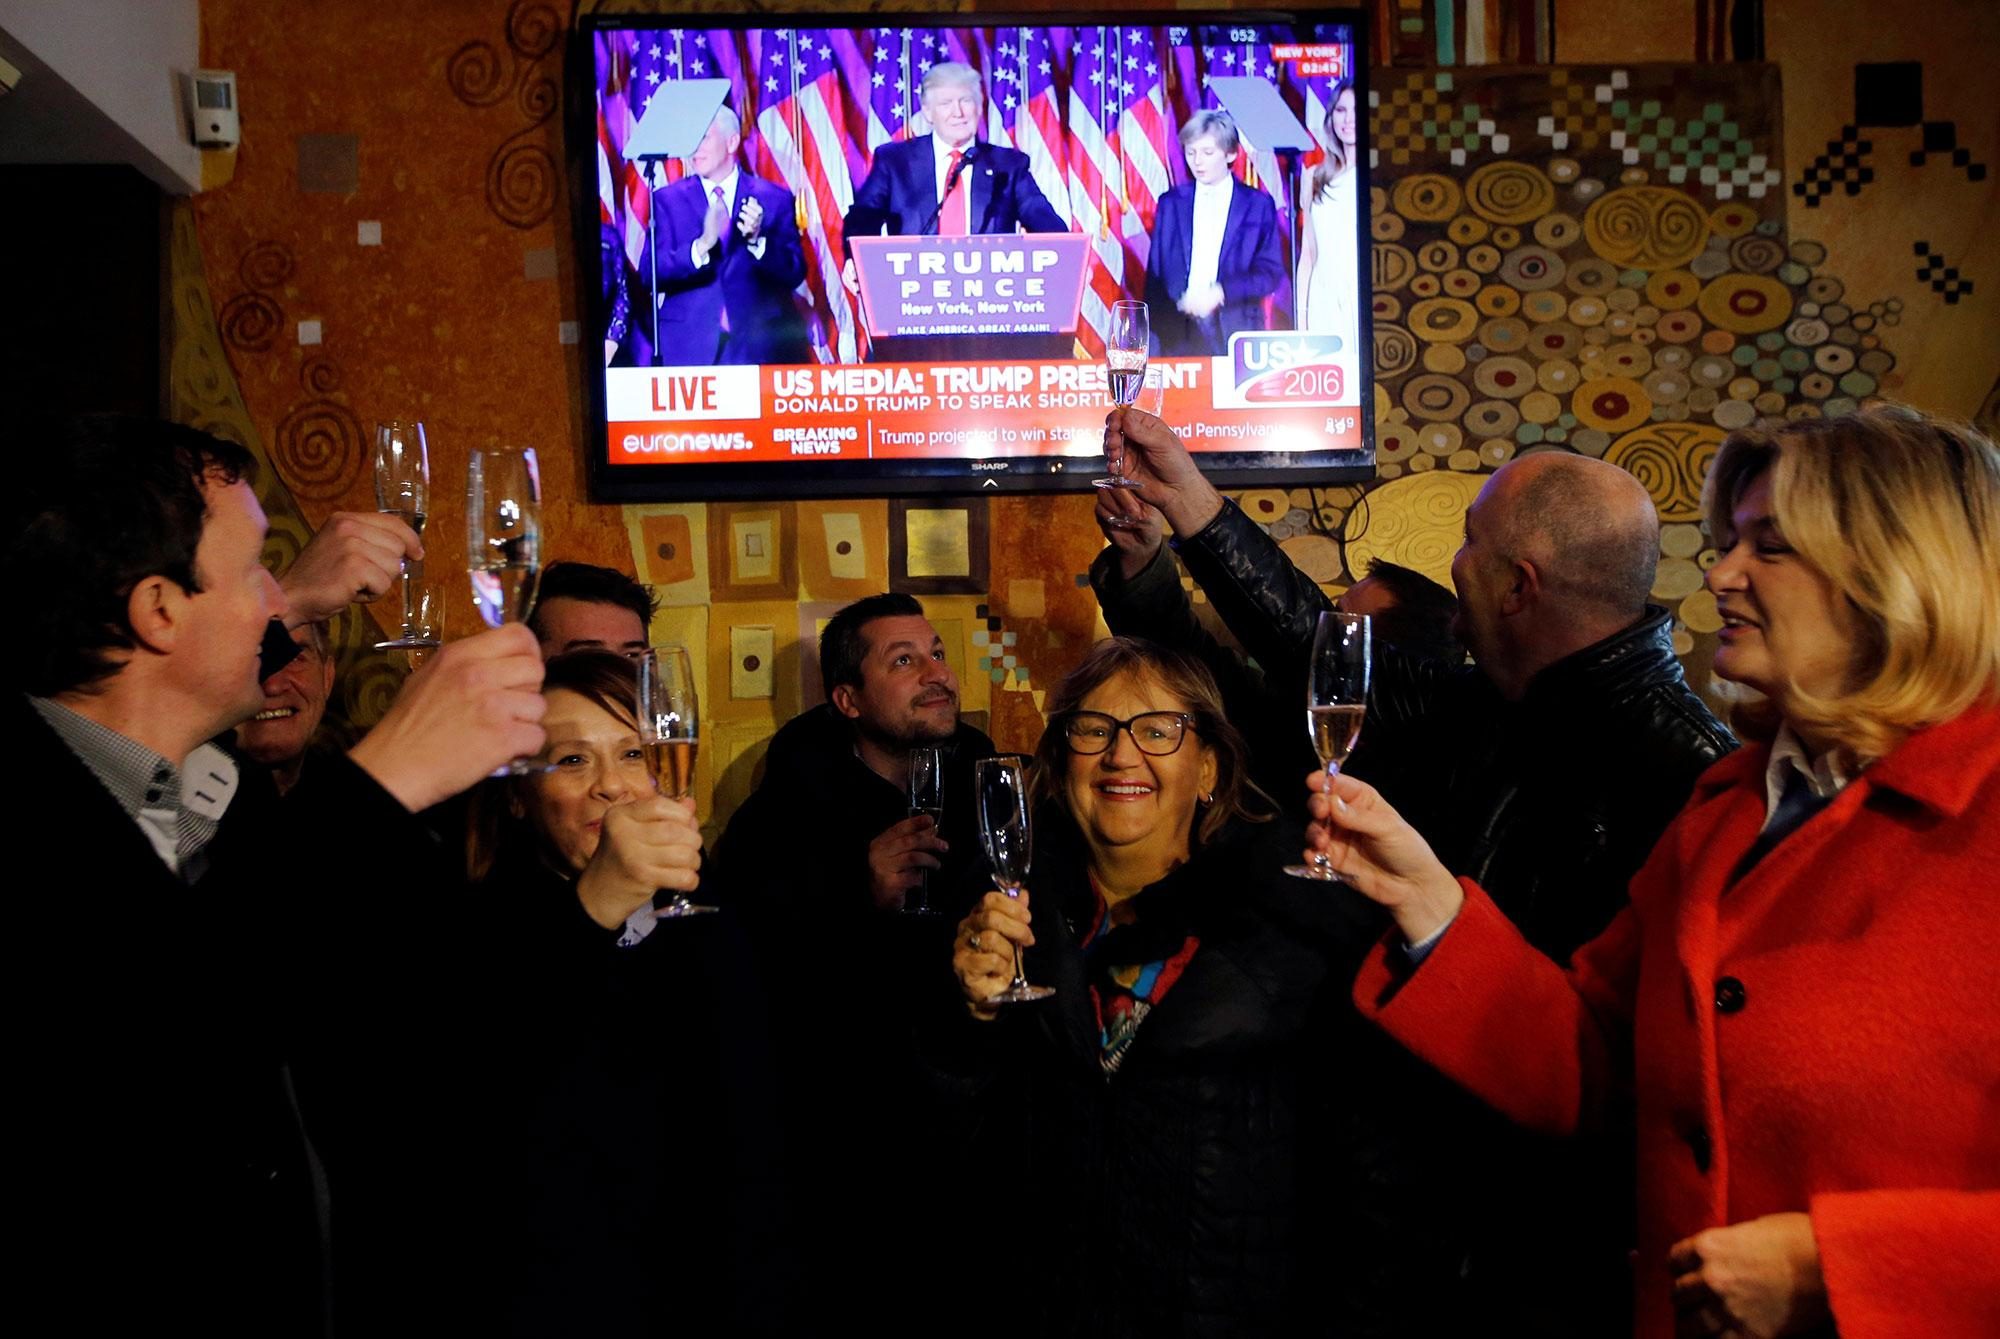 <p>Residents celebrate during the U.S. presidential election in Melania Trump's hometown of Sevnica, Slovenia on Nov. 9, 2016. (Photo: /Srdjan Zivulovic/Reuters) </p>